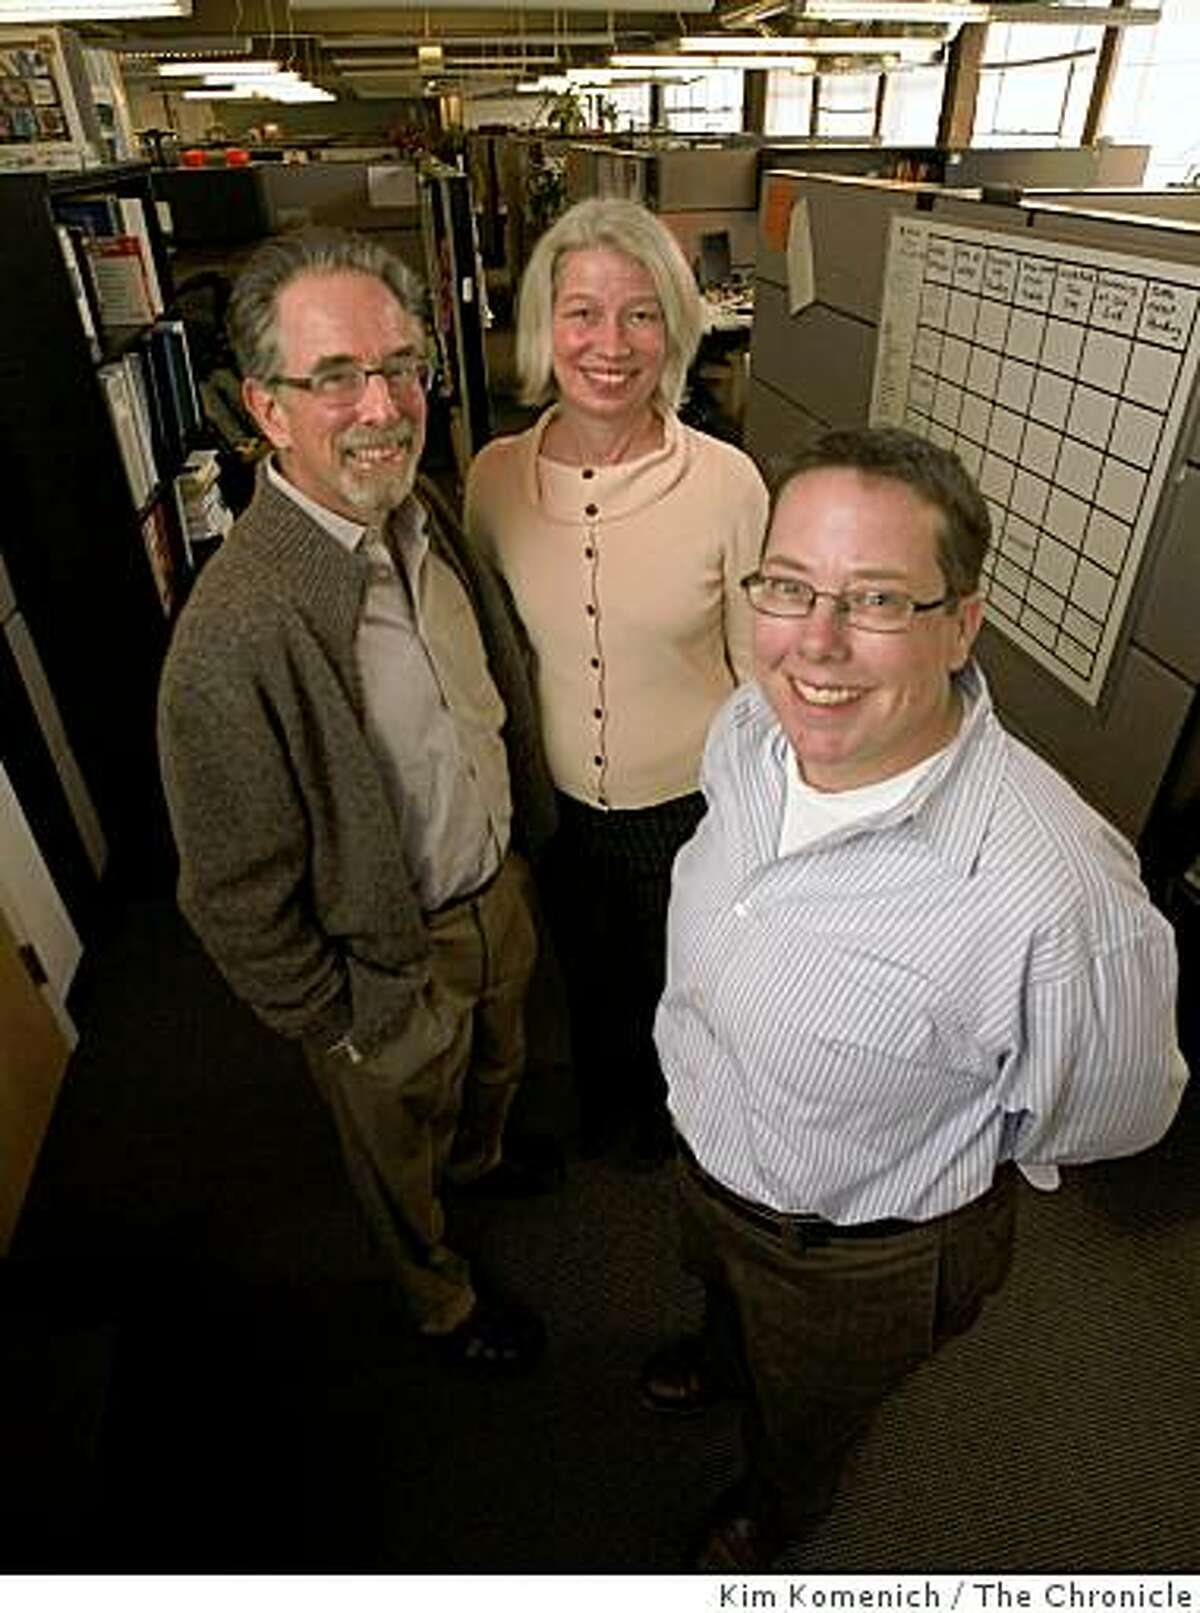 Daniel Ben-Horin (L), Rebecca Masisak and Marnie Webb the co-CEO's of Techsoup, stand in the customer service department at Techsoup's San Francisco, Calif., offices on Wednesday, Mar. 4, 2009.